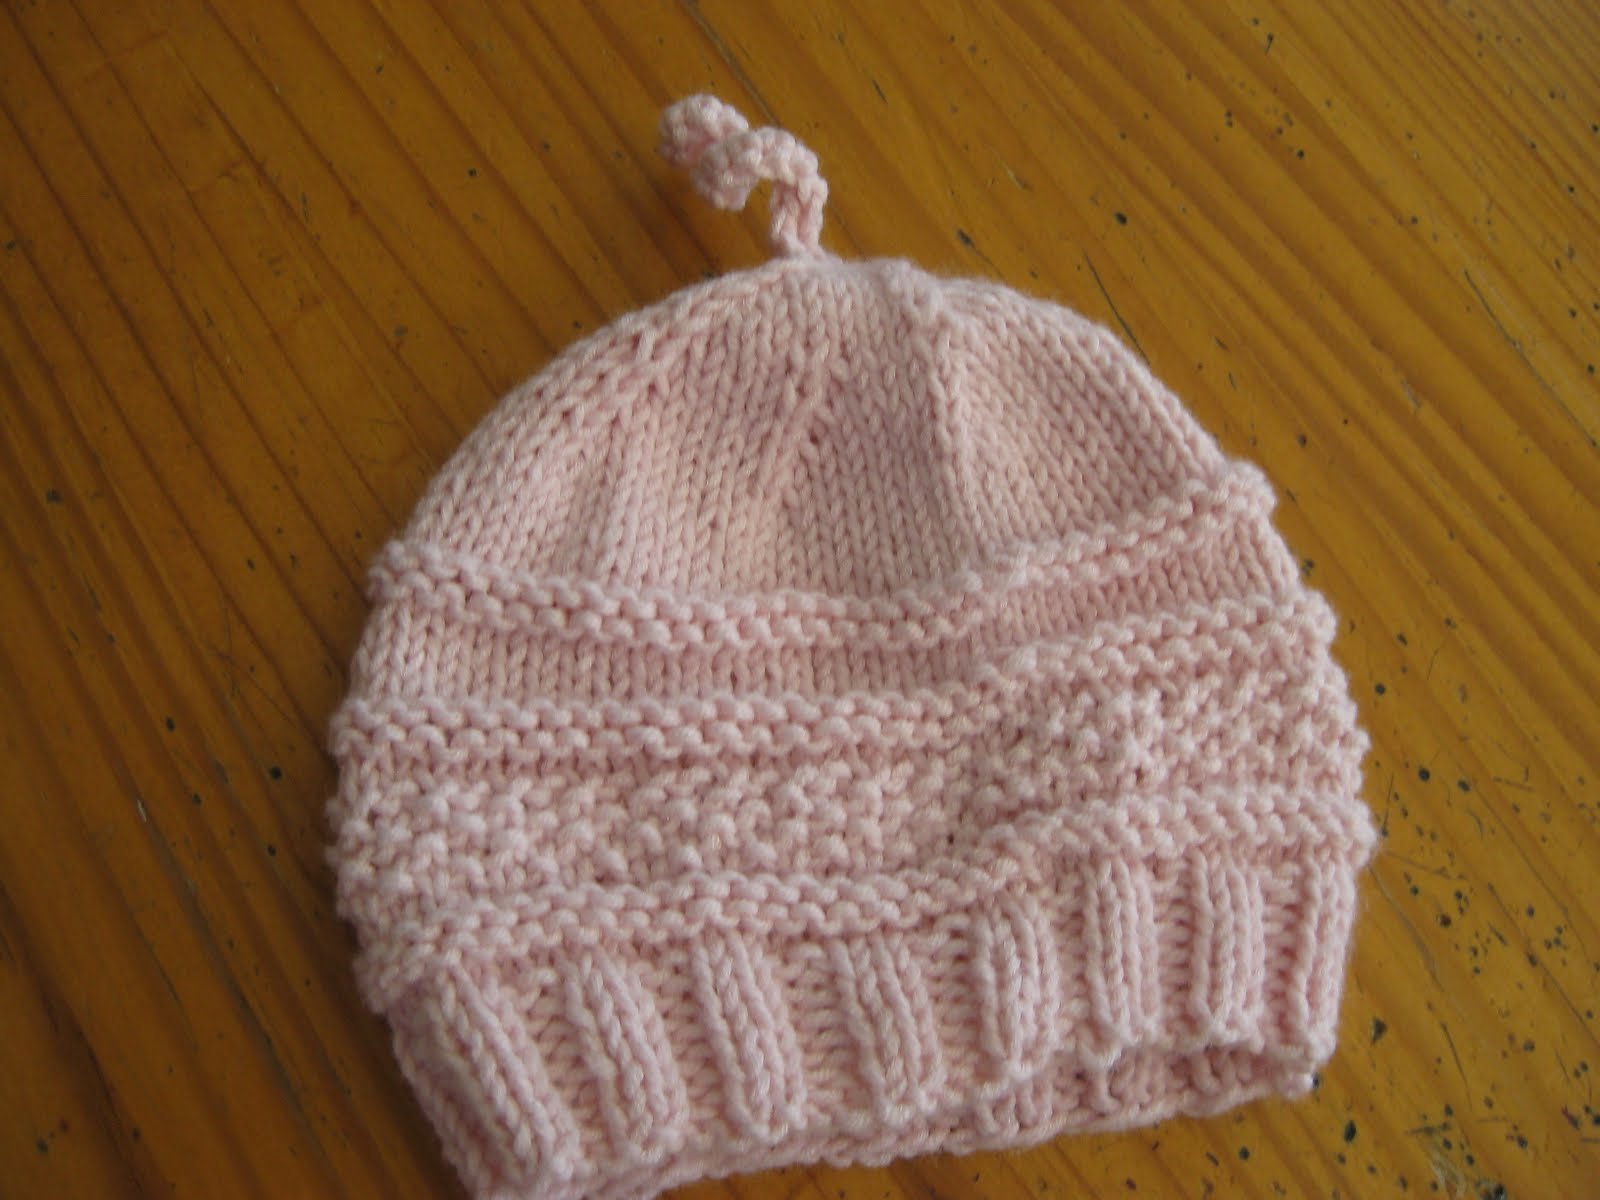 Knitting Patterns Caps : knitting baby hats-Knitting Gallery